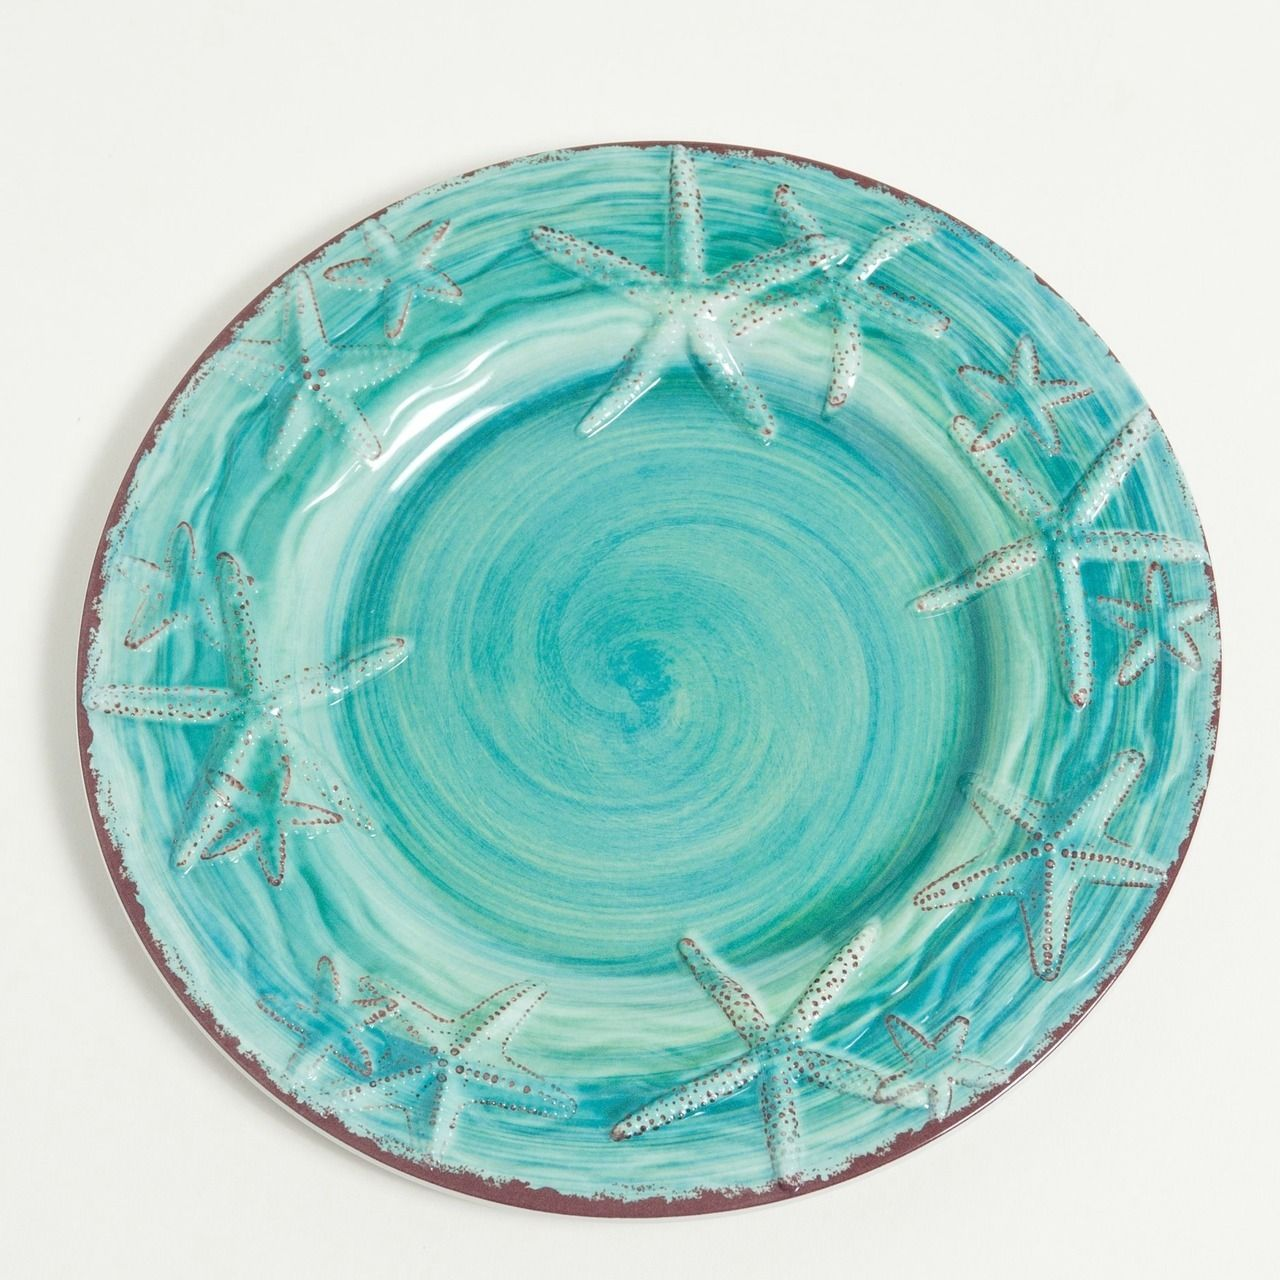 The 9   Turquoise Raised Starfish Salad/Dessert Plates are sold in sets of  sc 1 st  Pinterest & Raised Turquoise Starfish Salad Plates - Set of 4 | Starfish ...